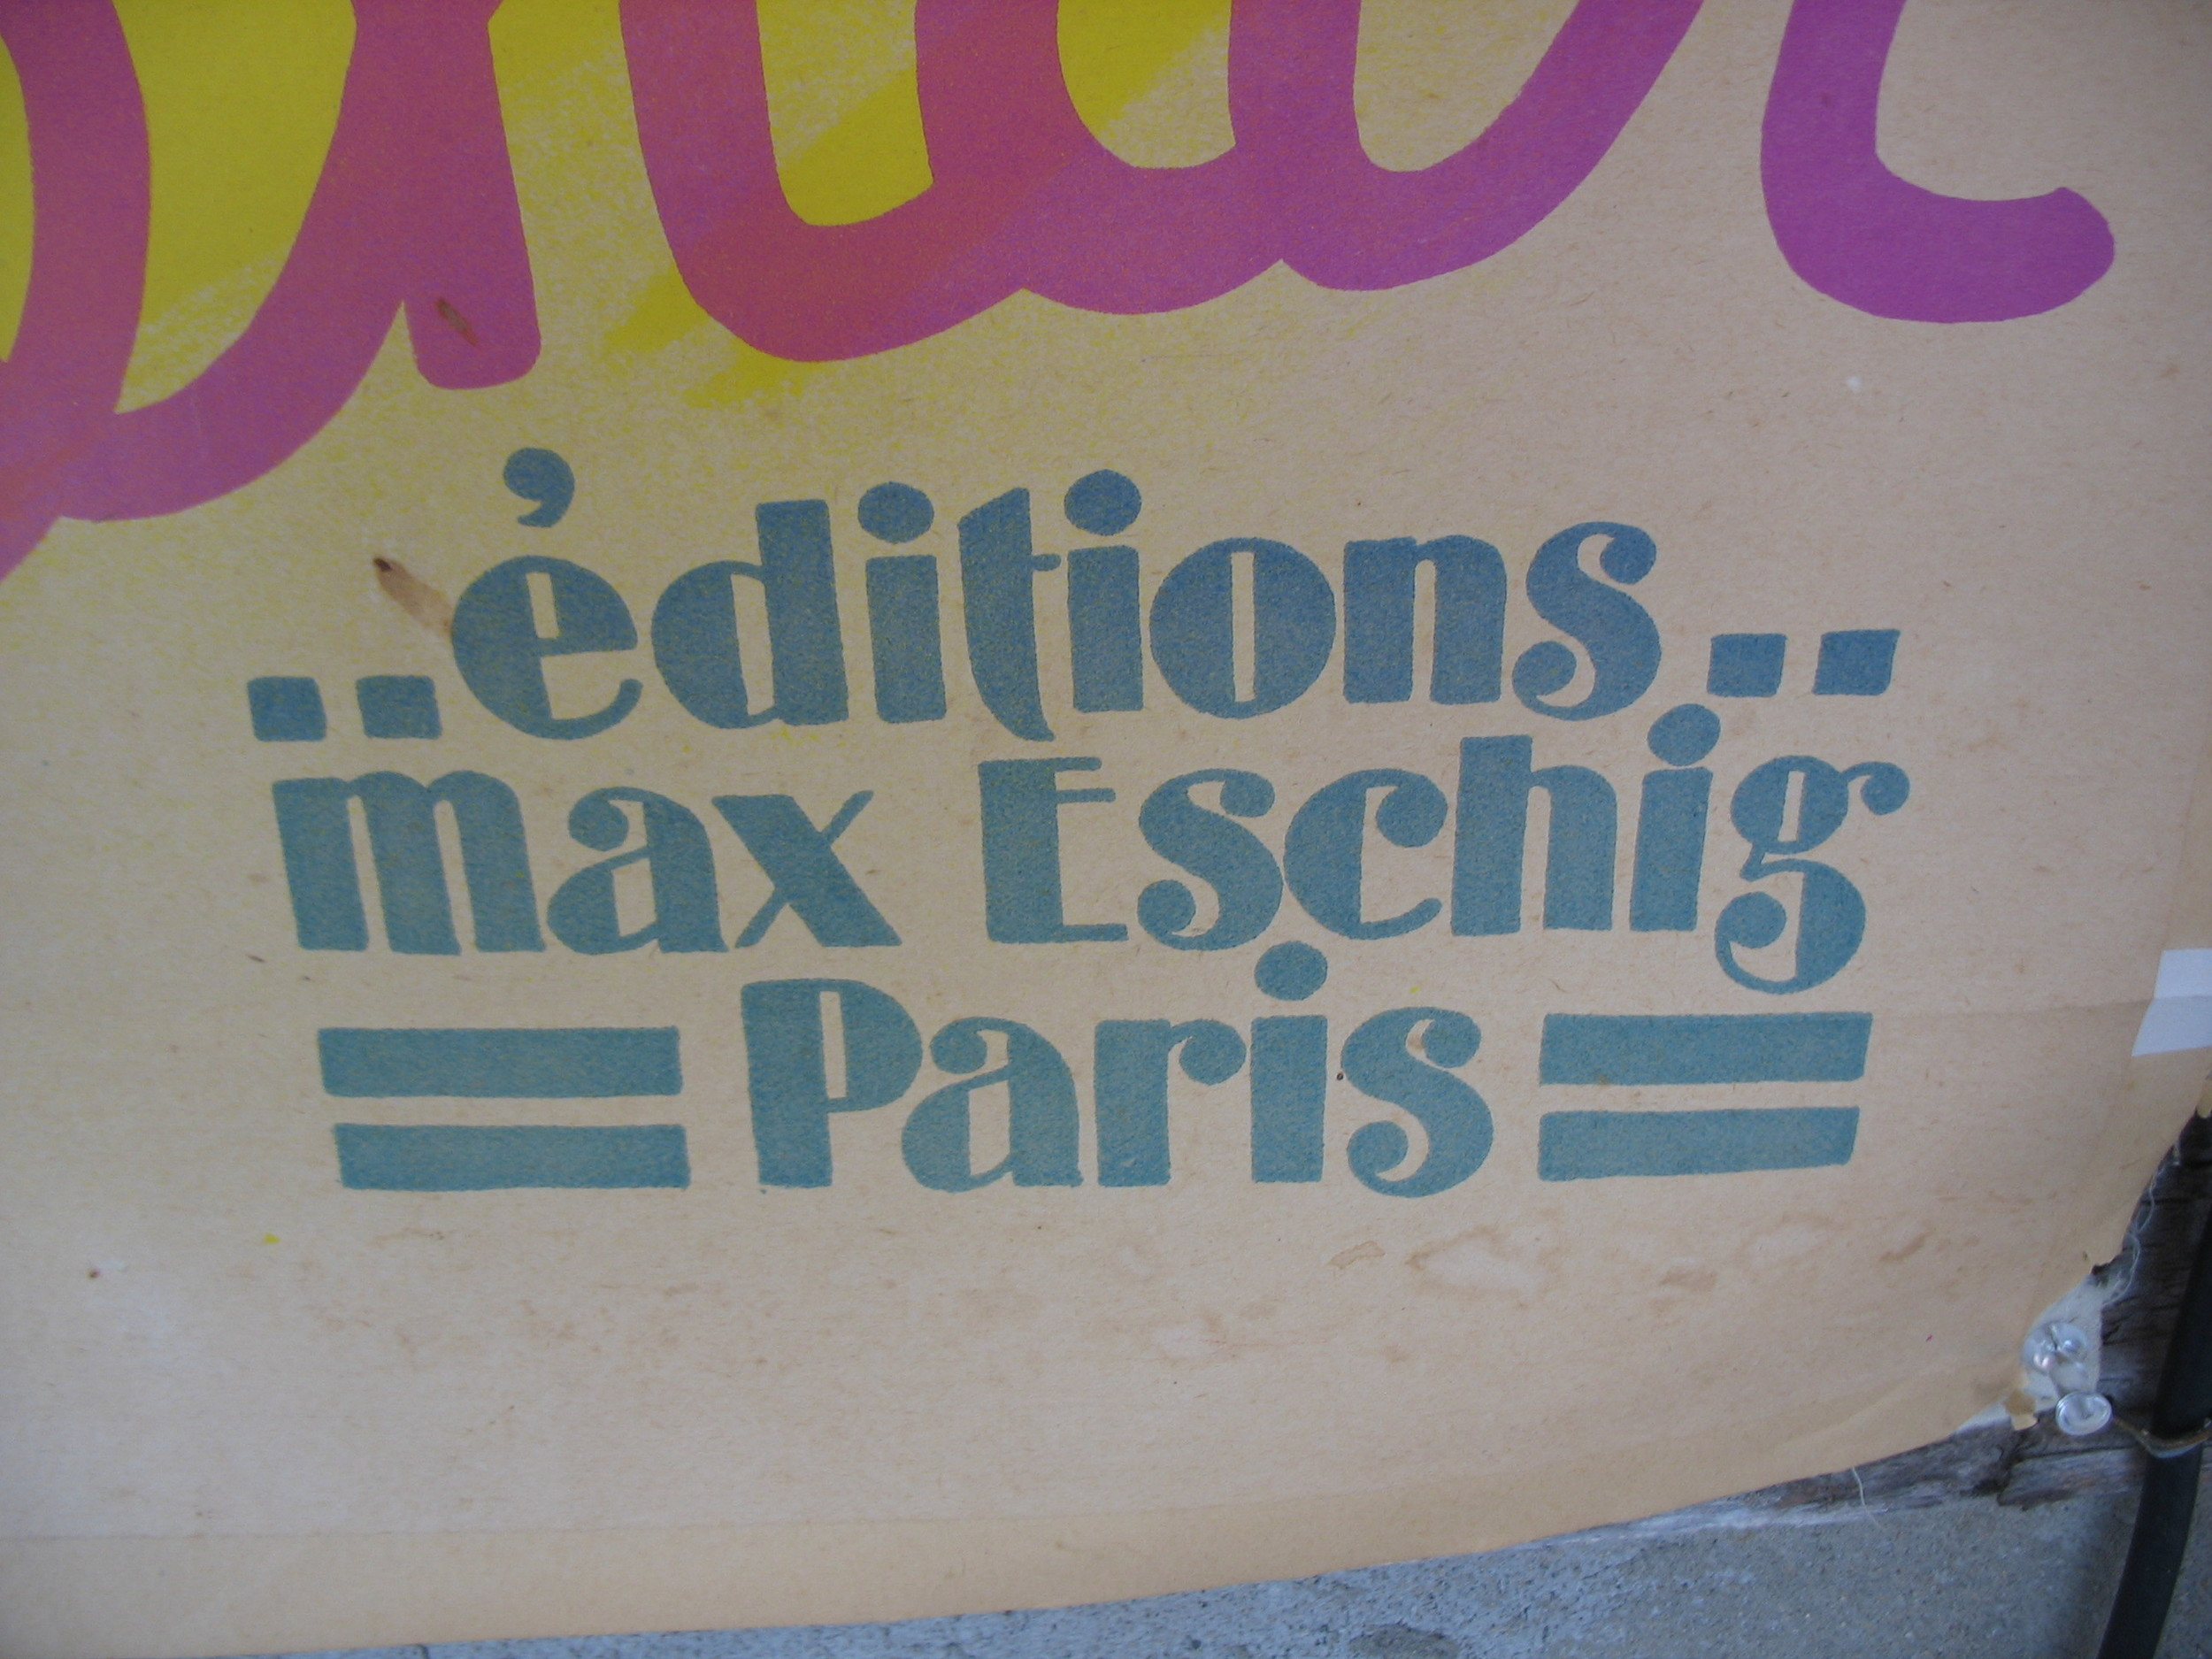 This gives the information of the edition which was my Max Eschig in Paris